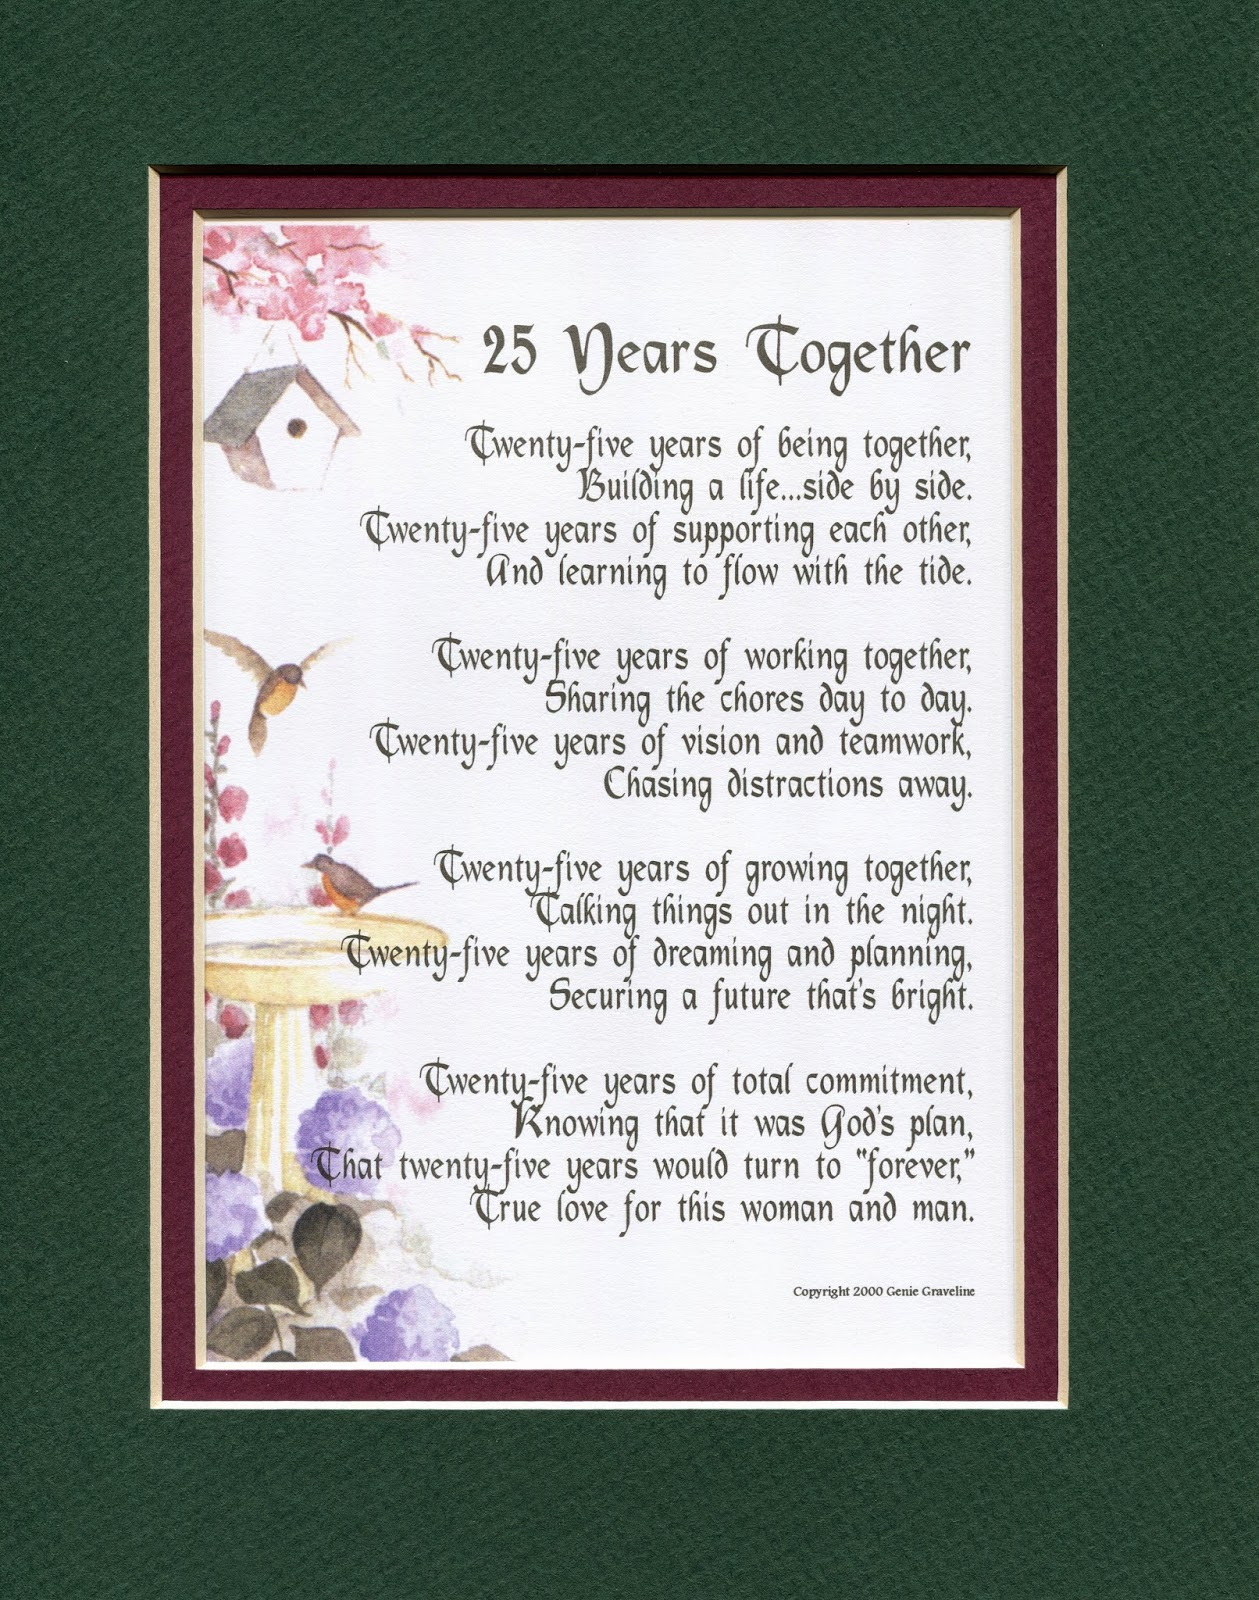 Wedding Gift For High School Friend : You can see this poem along with others at my website...